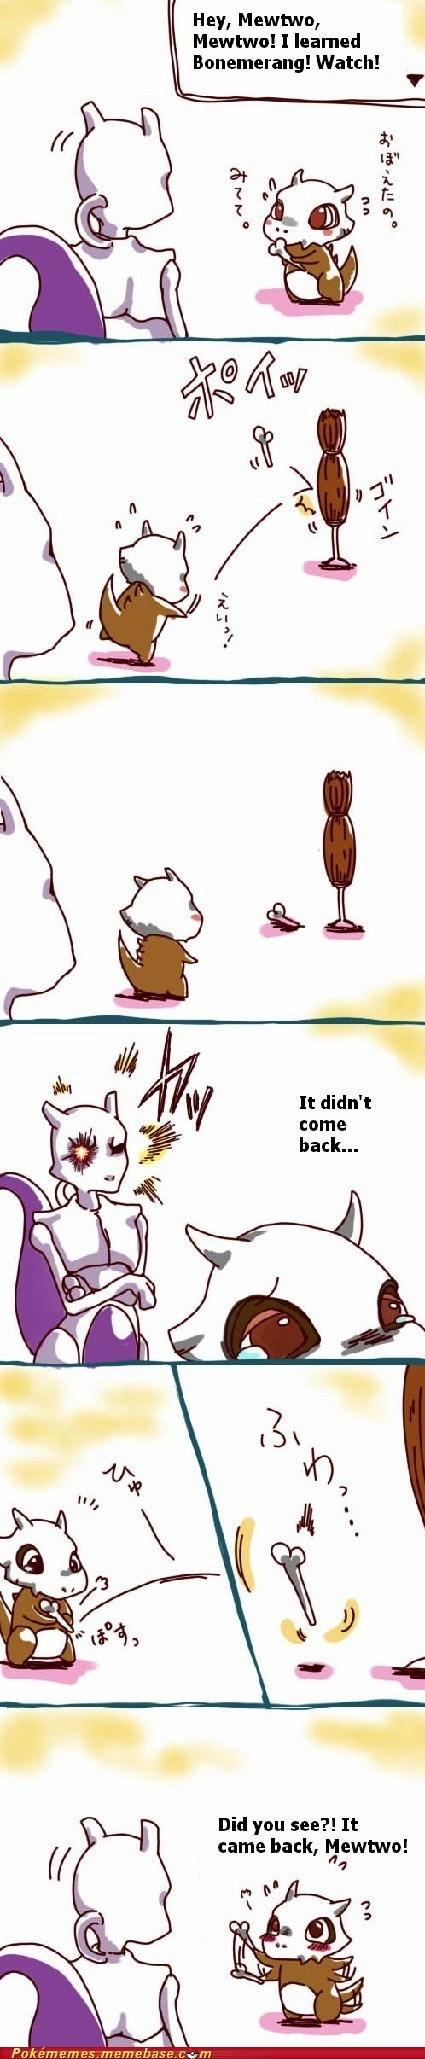 Pokémemes: Mewtwo is so Misunderstood